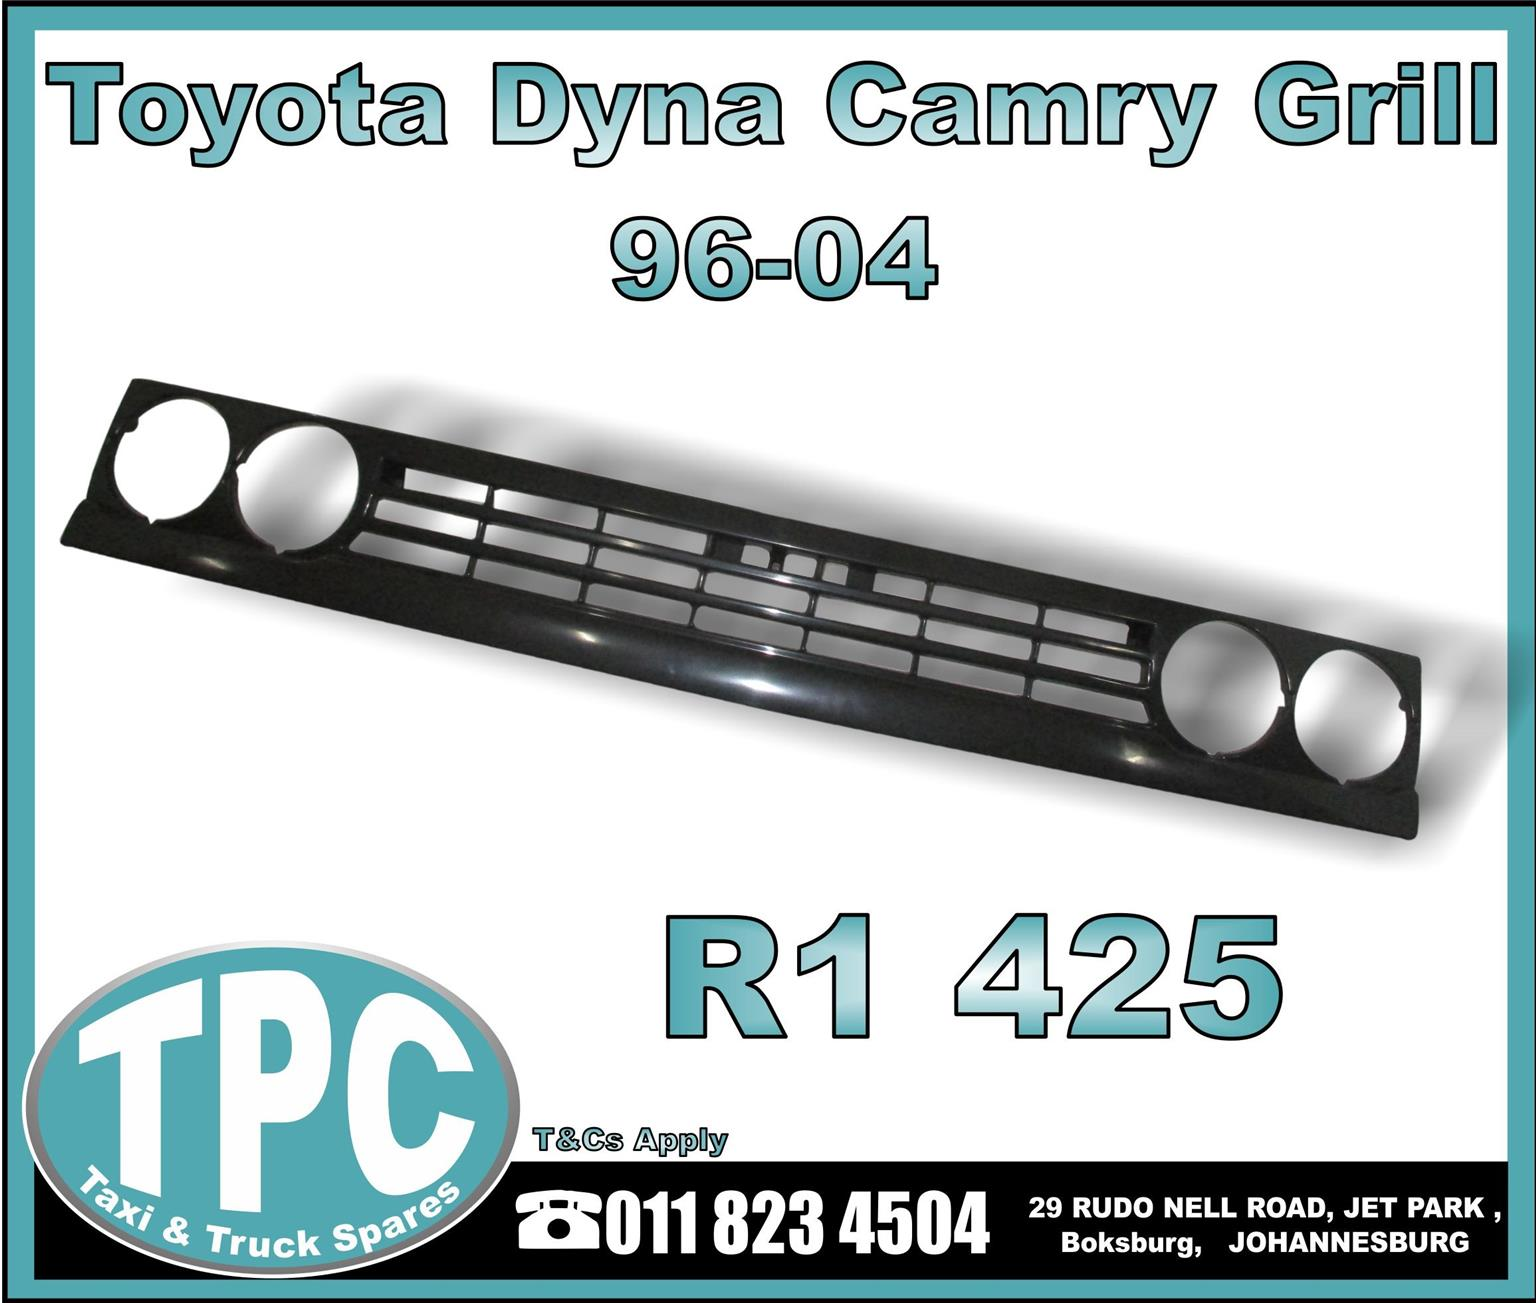 Toyota Dyna Camry Grill - 96-04 - New Replacement Truck Parts - TPC.